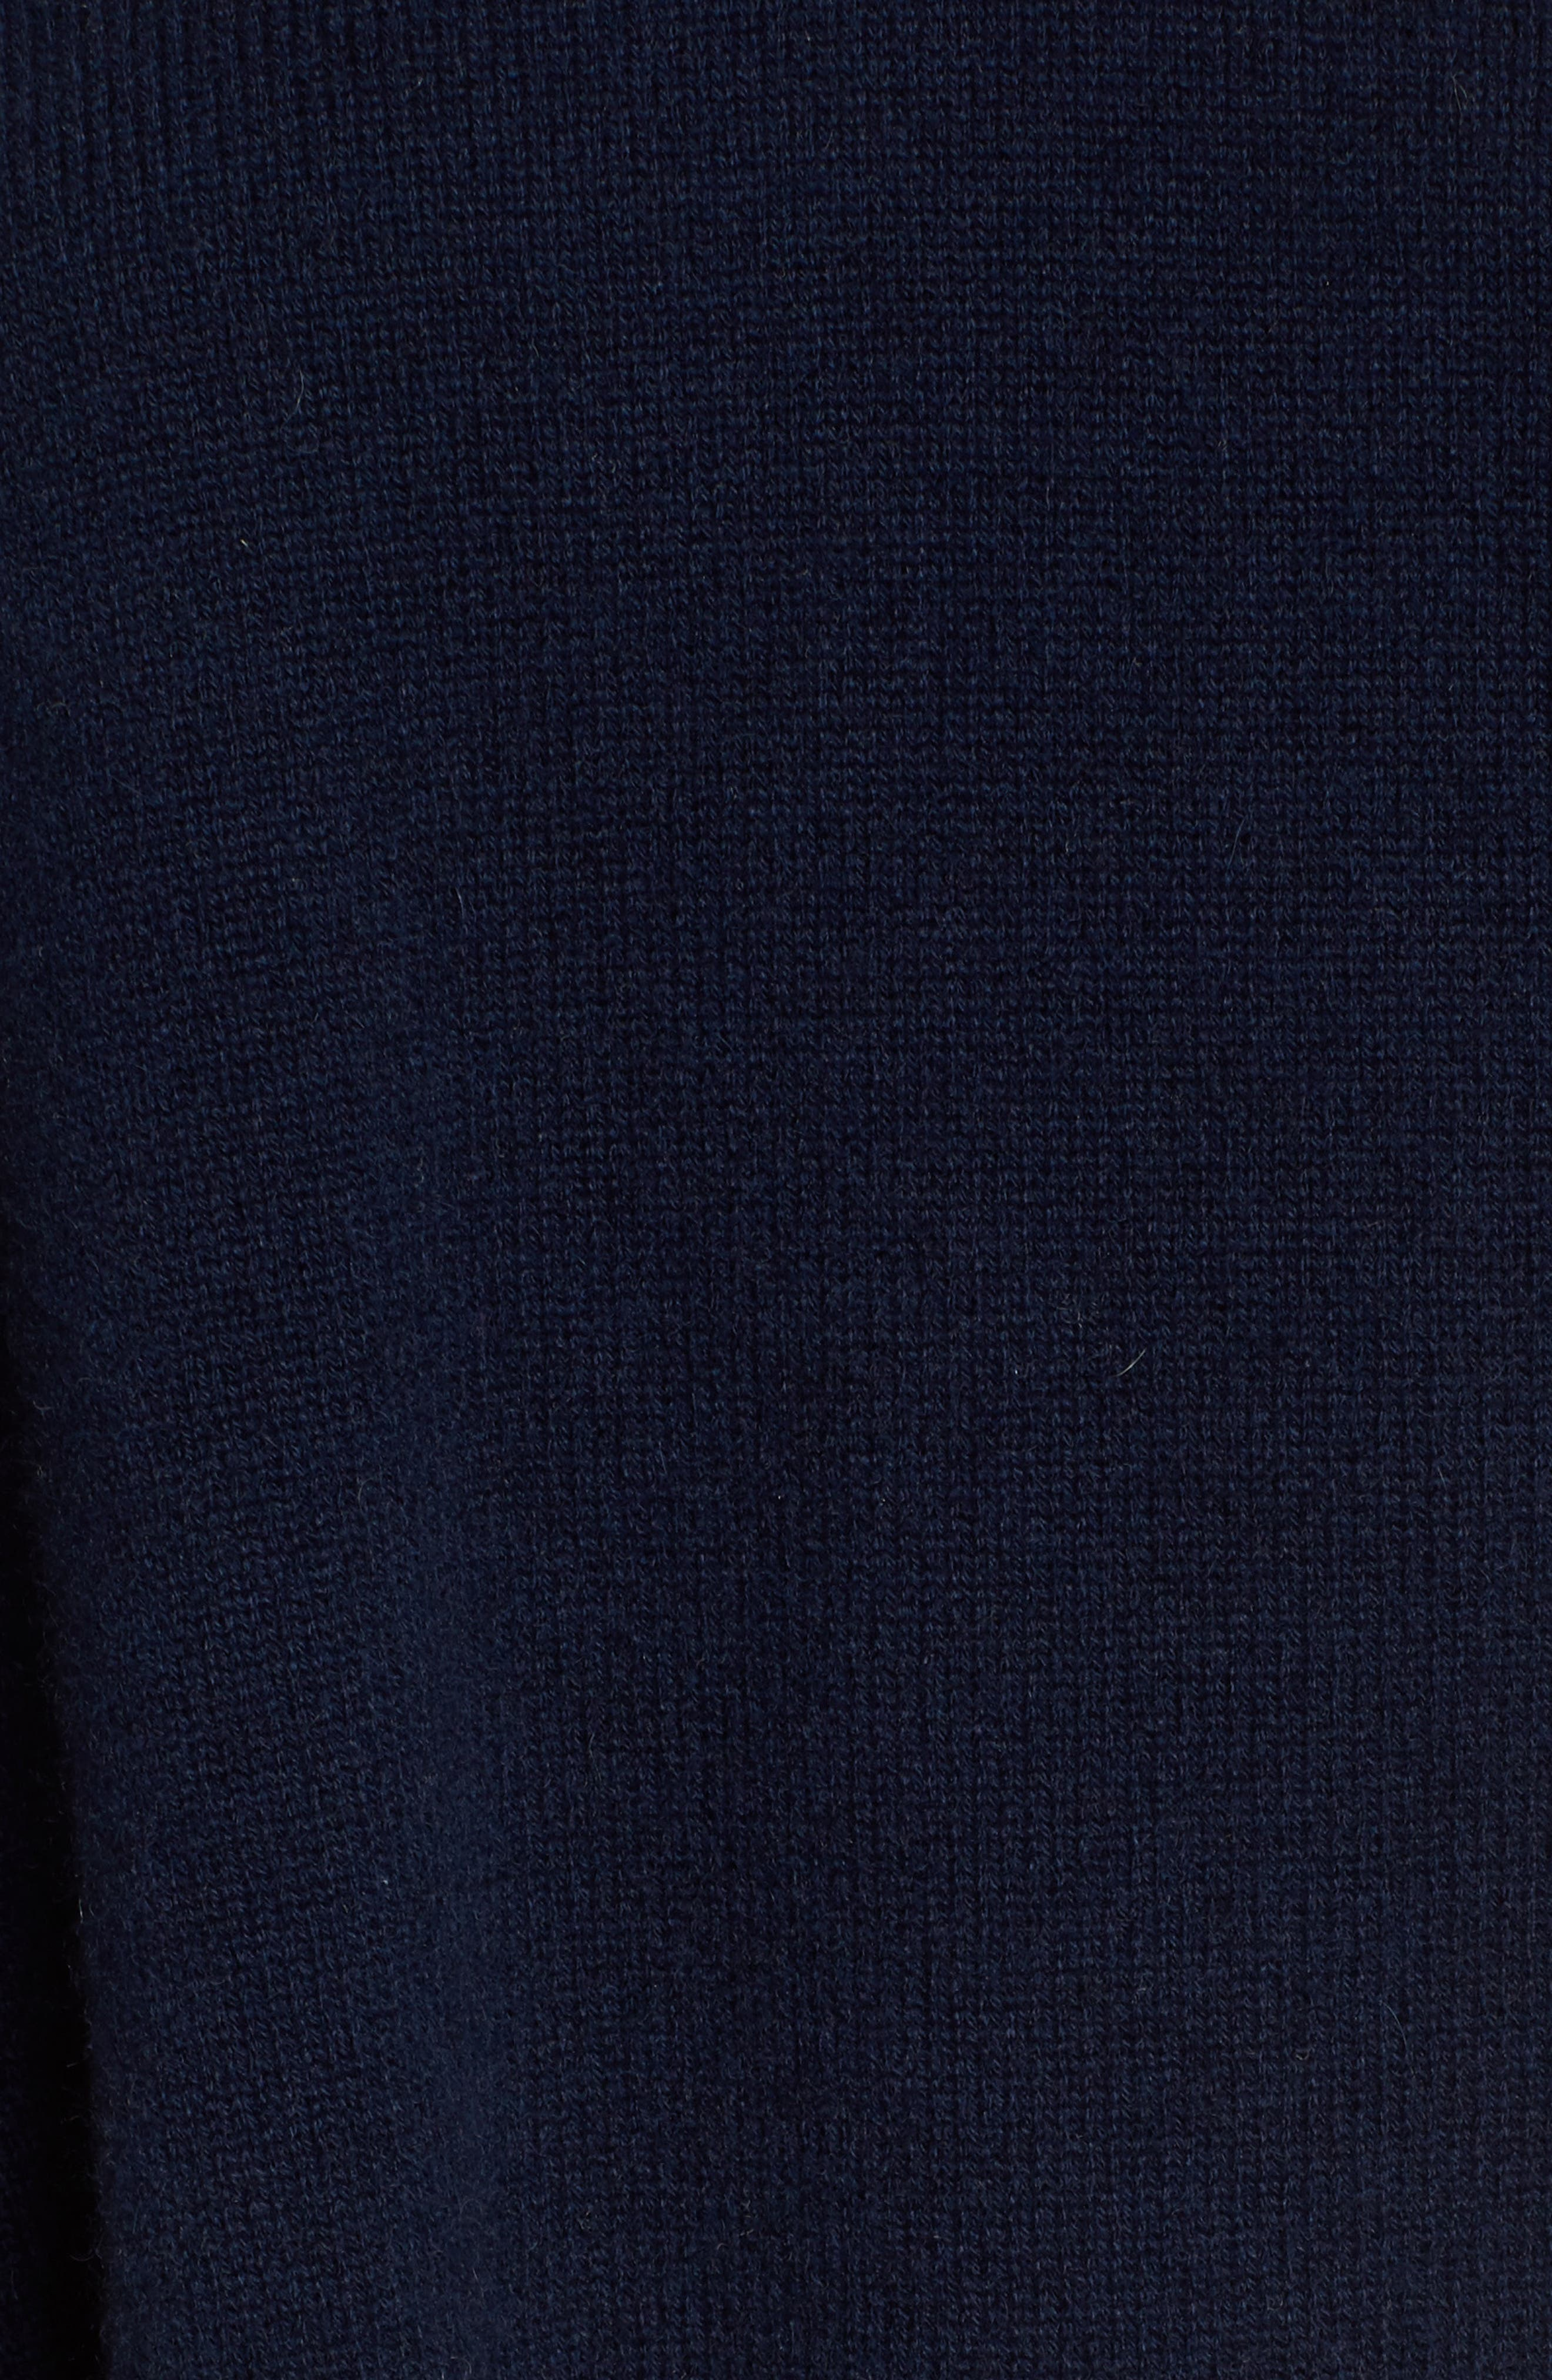 Cashmere High/Low Tunic Sweater,                             Alternate thumbnail 5, color,                             Navy Medieval